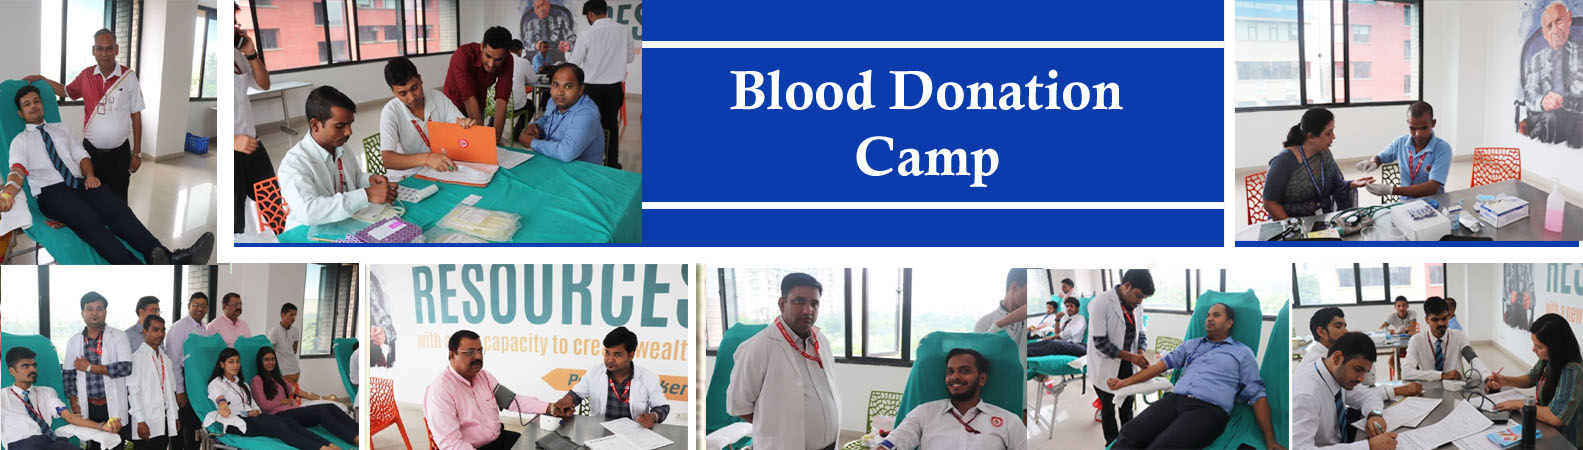 Blood-Donation-pgdm